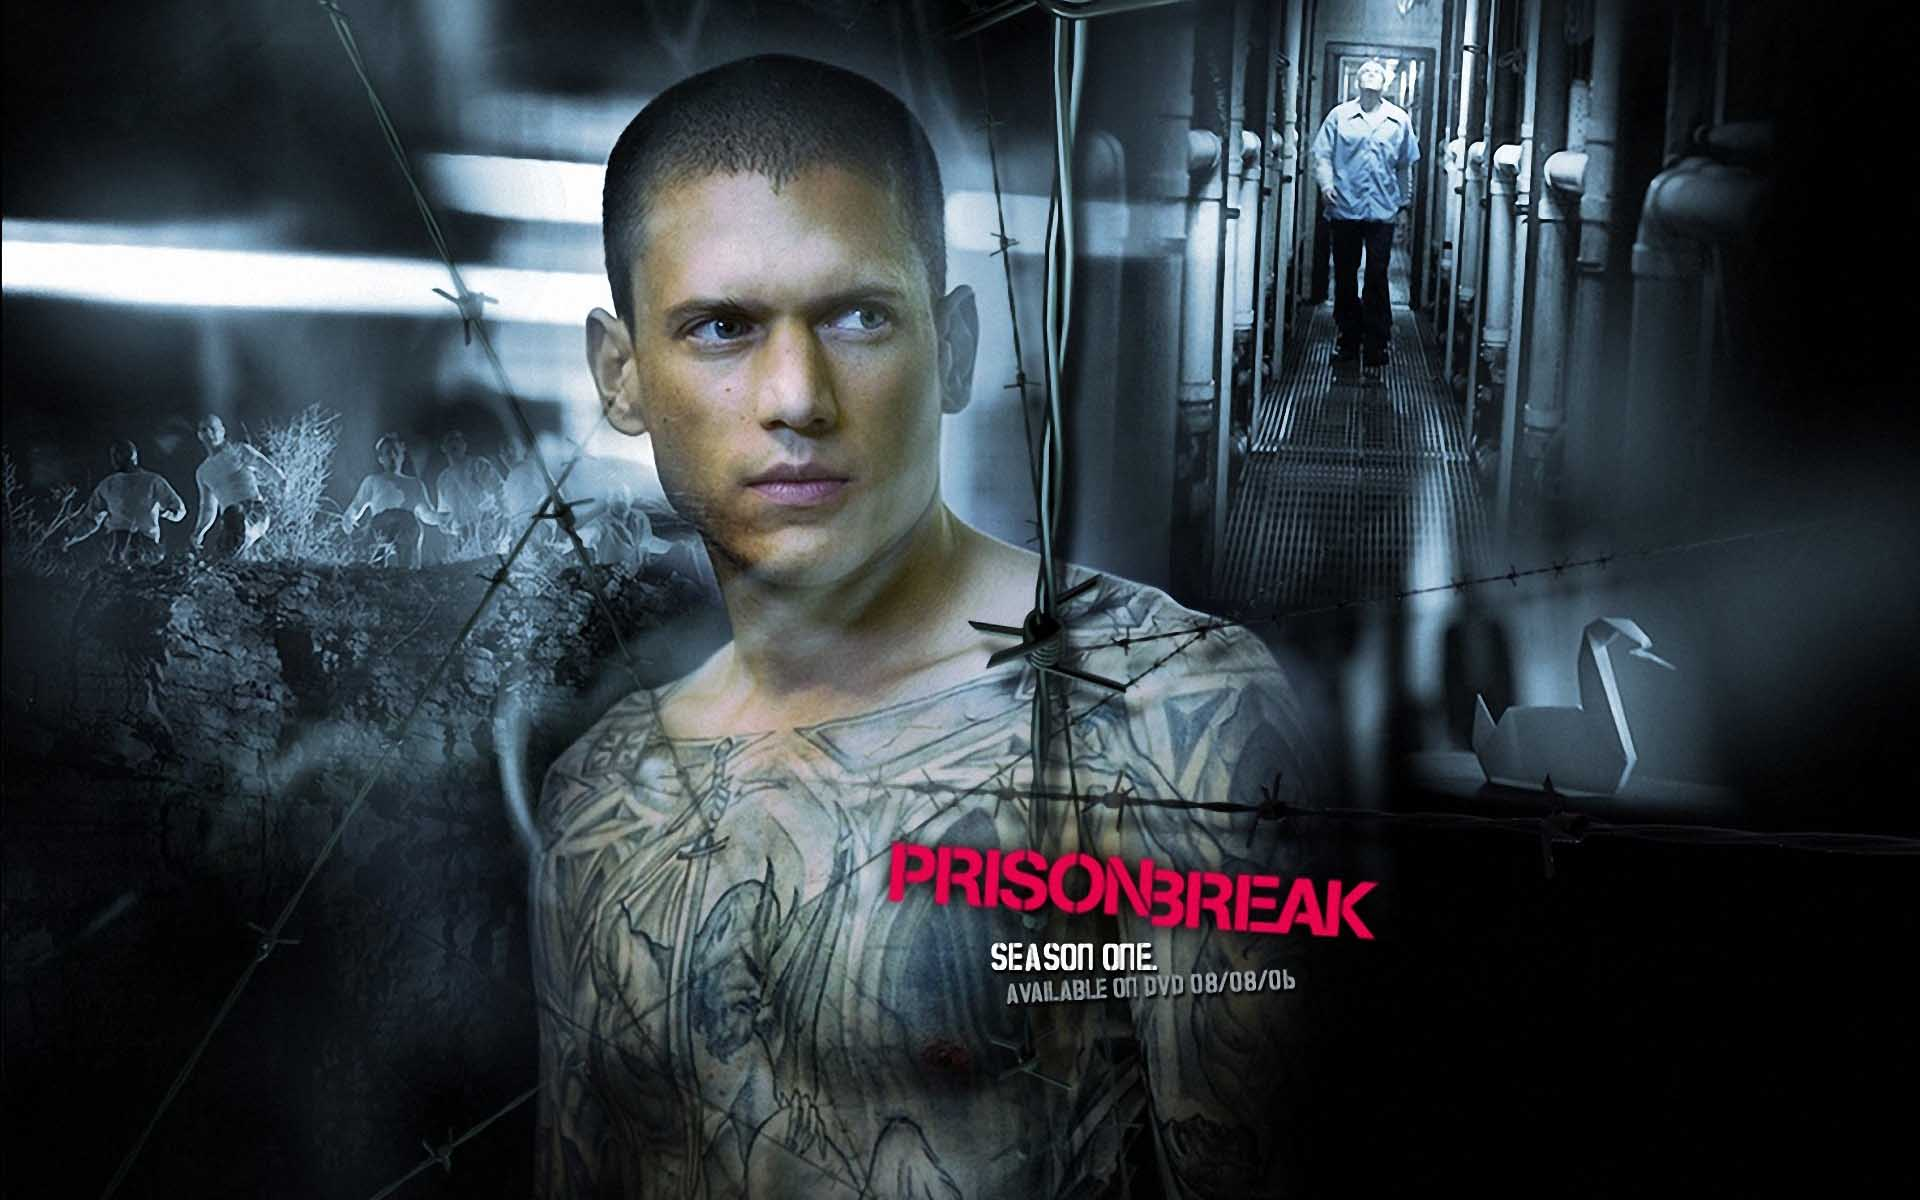 Prison Break Wallpapers